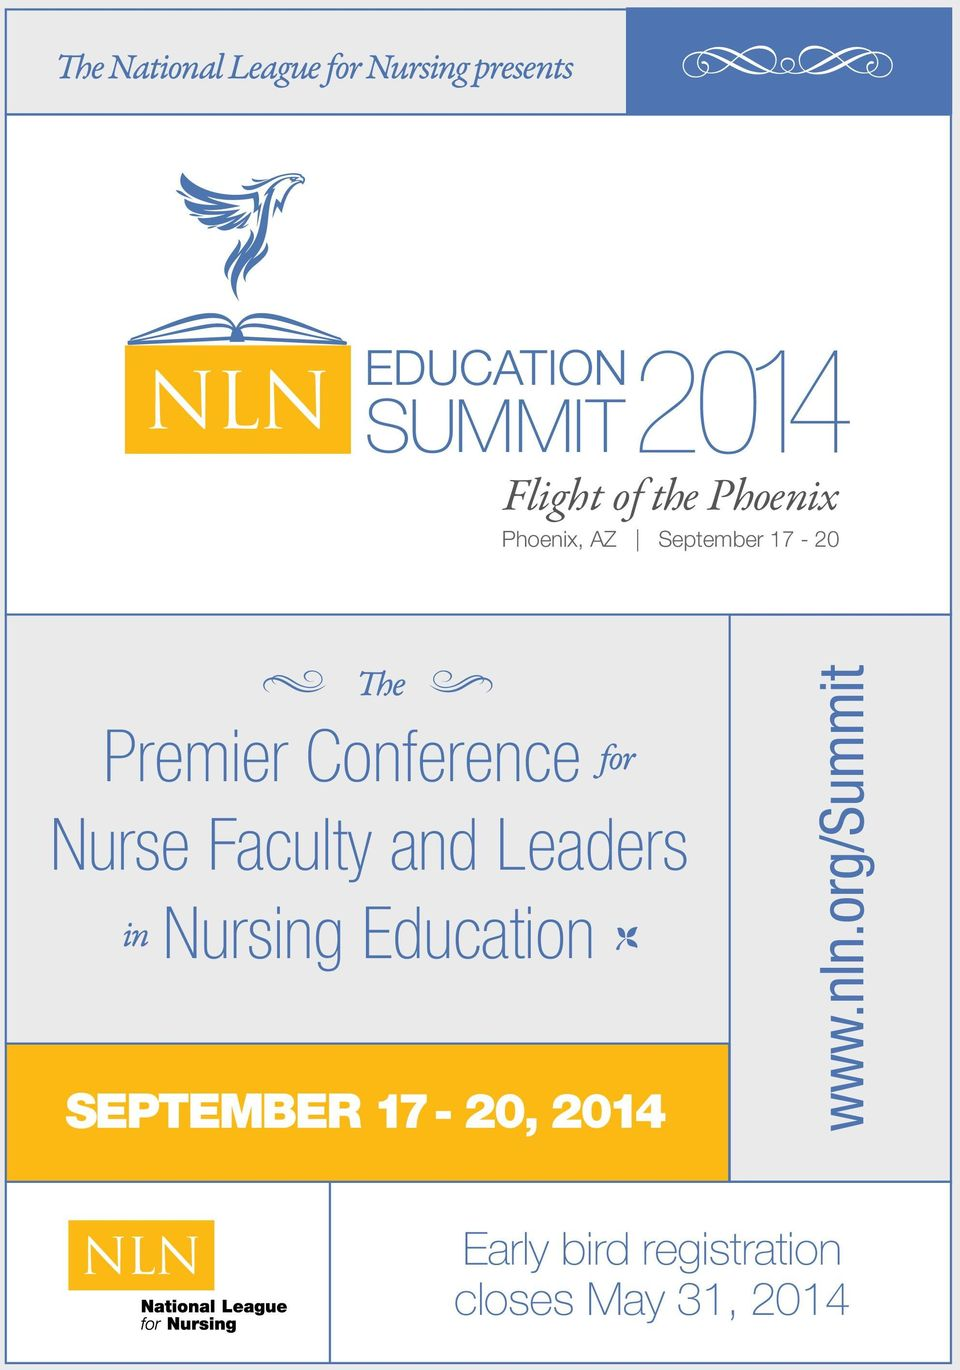 Conference for Nurse Faculty and Leaders in Nursing Education